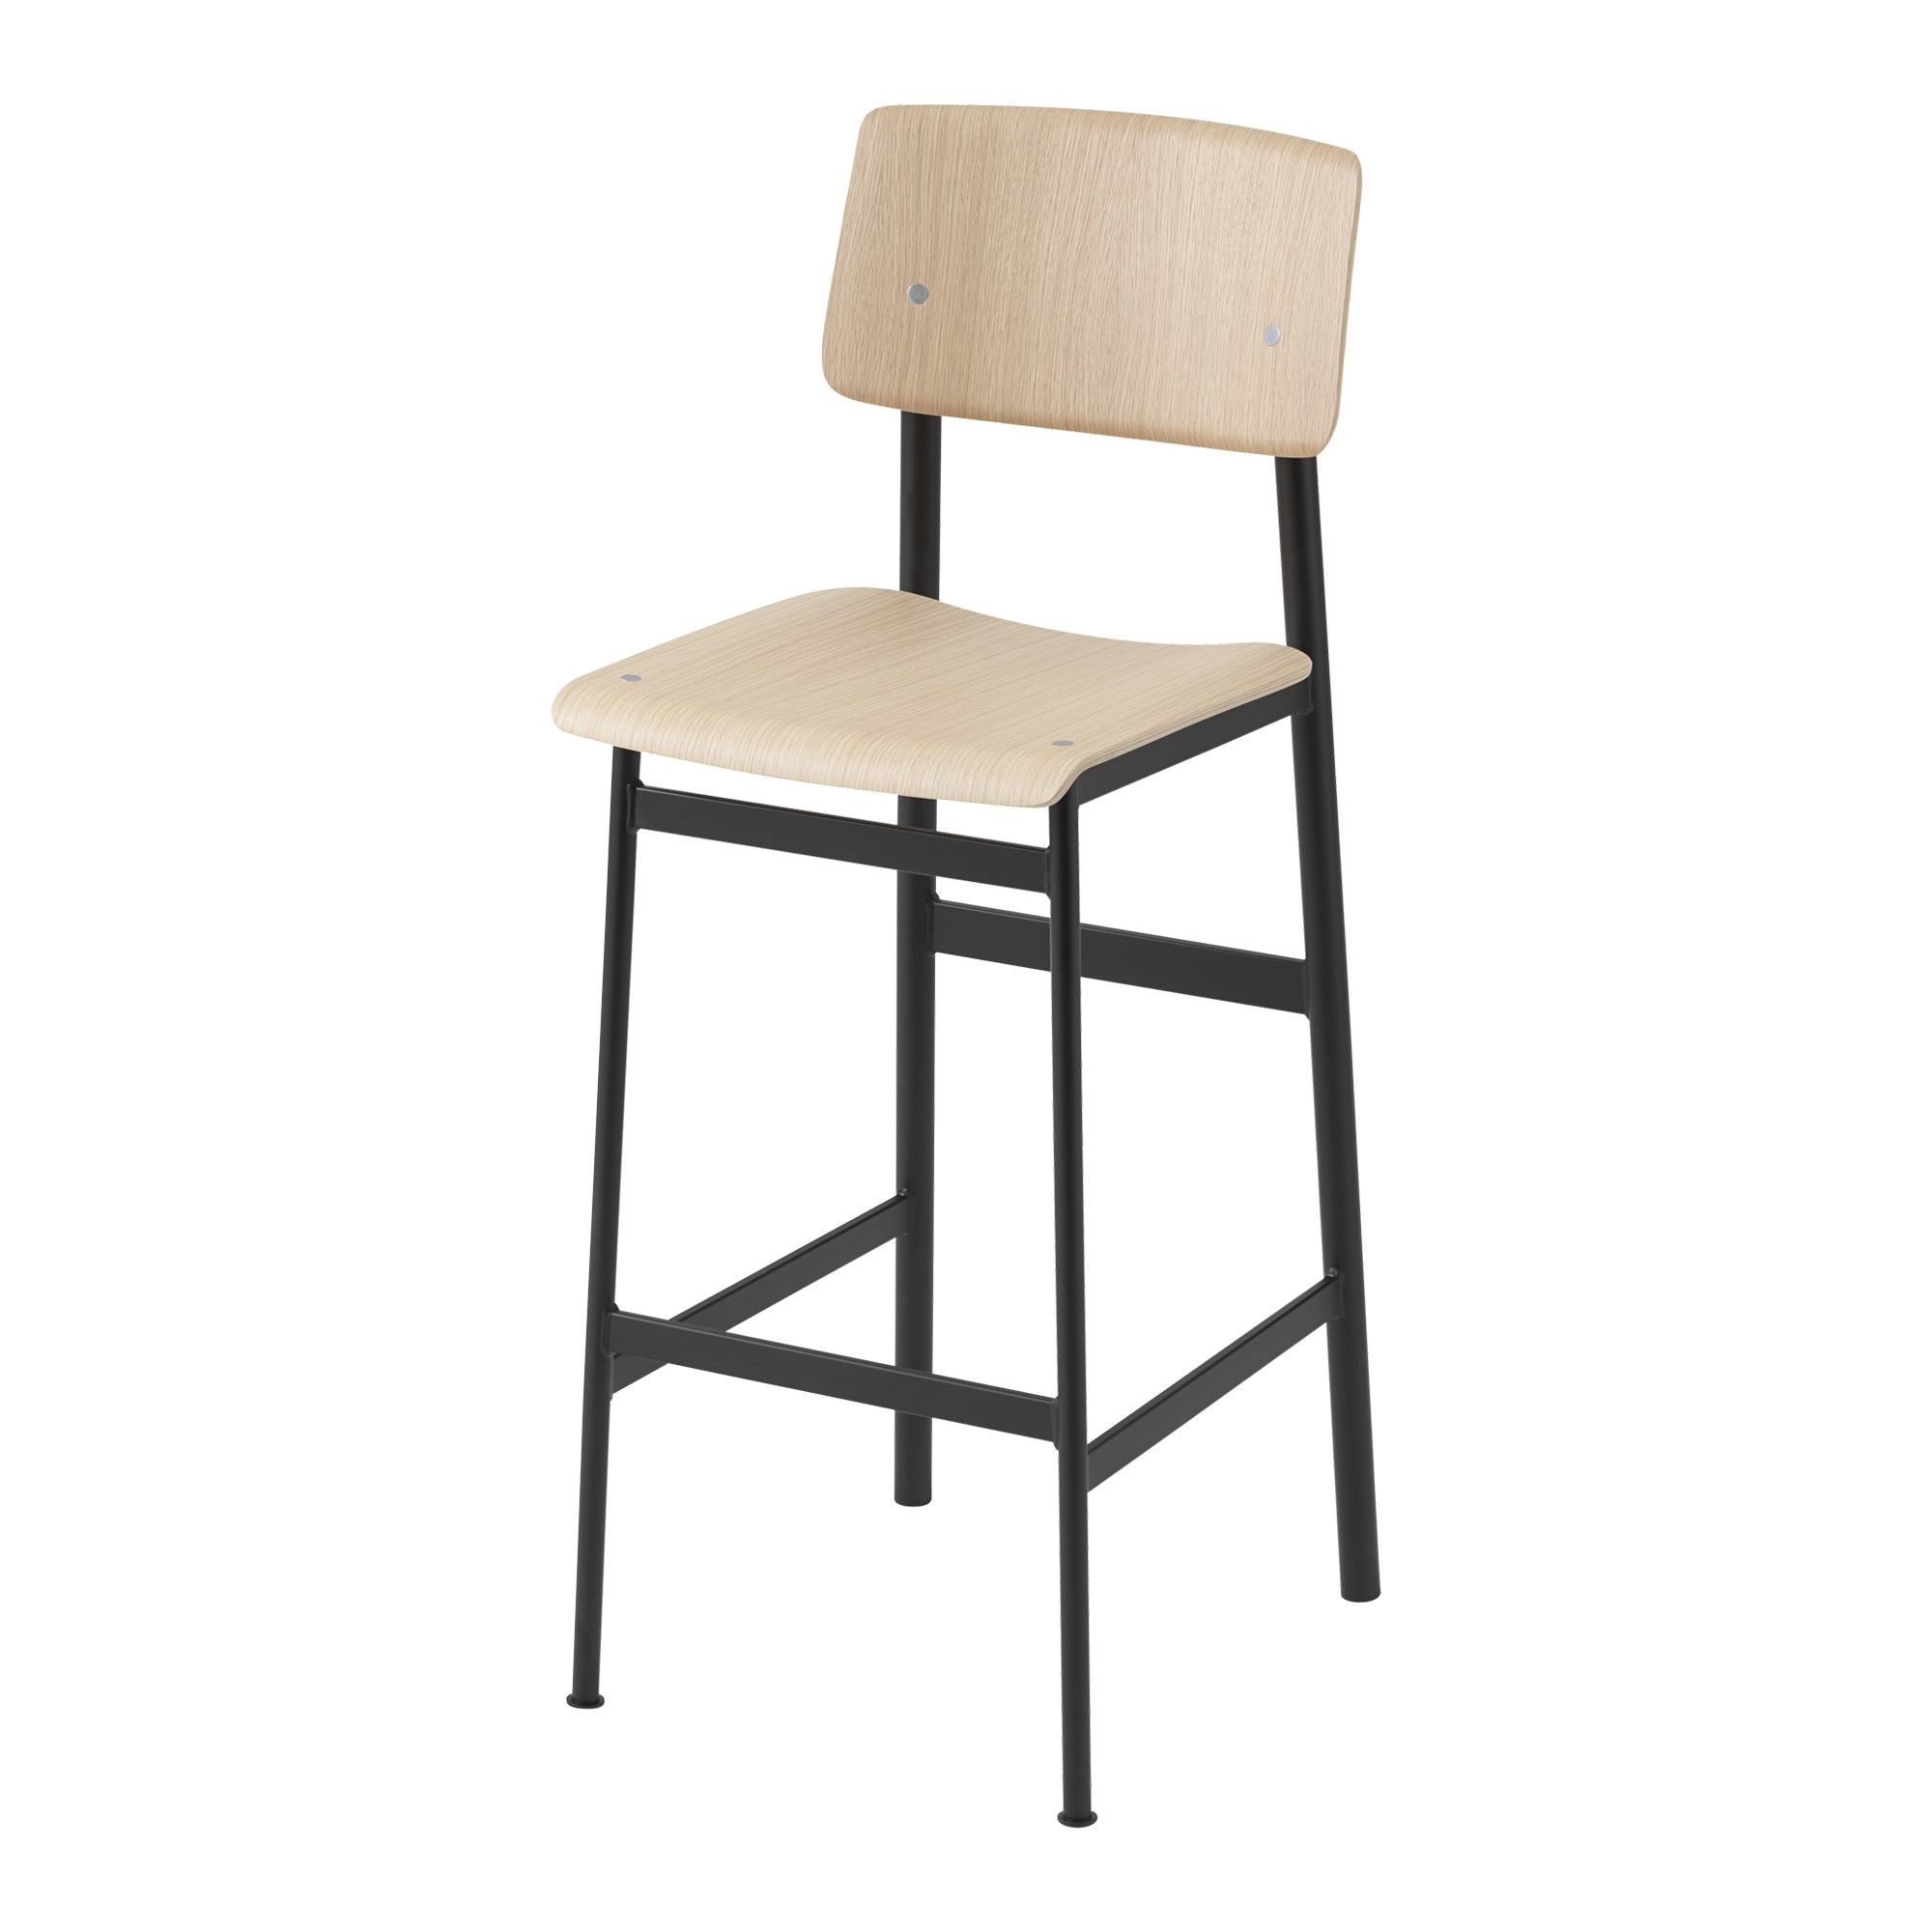 Loft Bar Stool 75 cm BlackOak